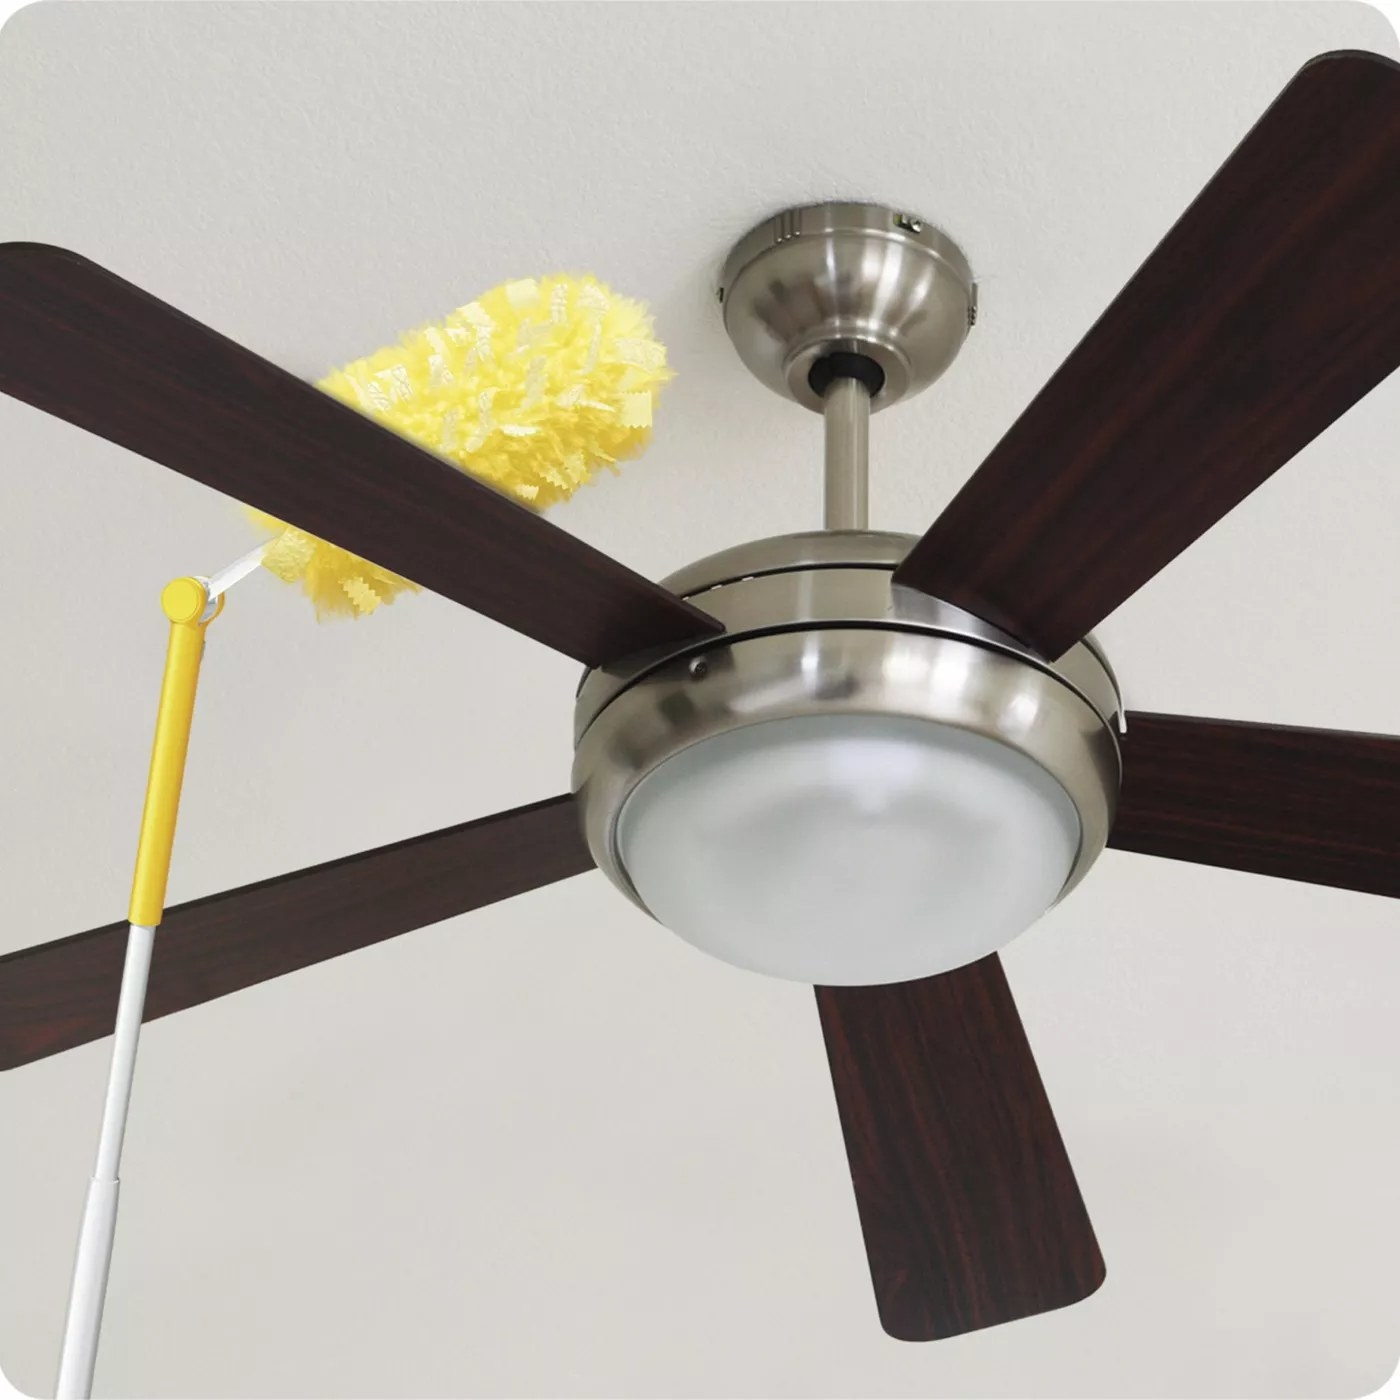 The duster extended and angled to clean a ceiling fan